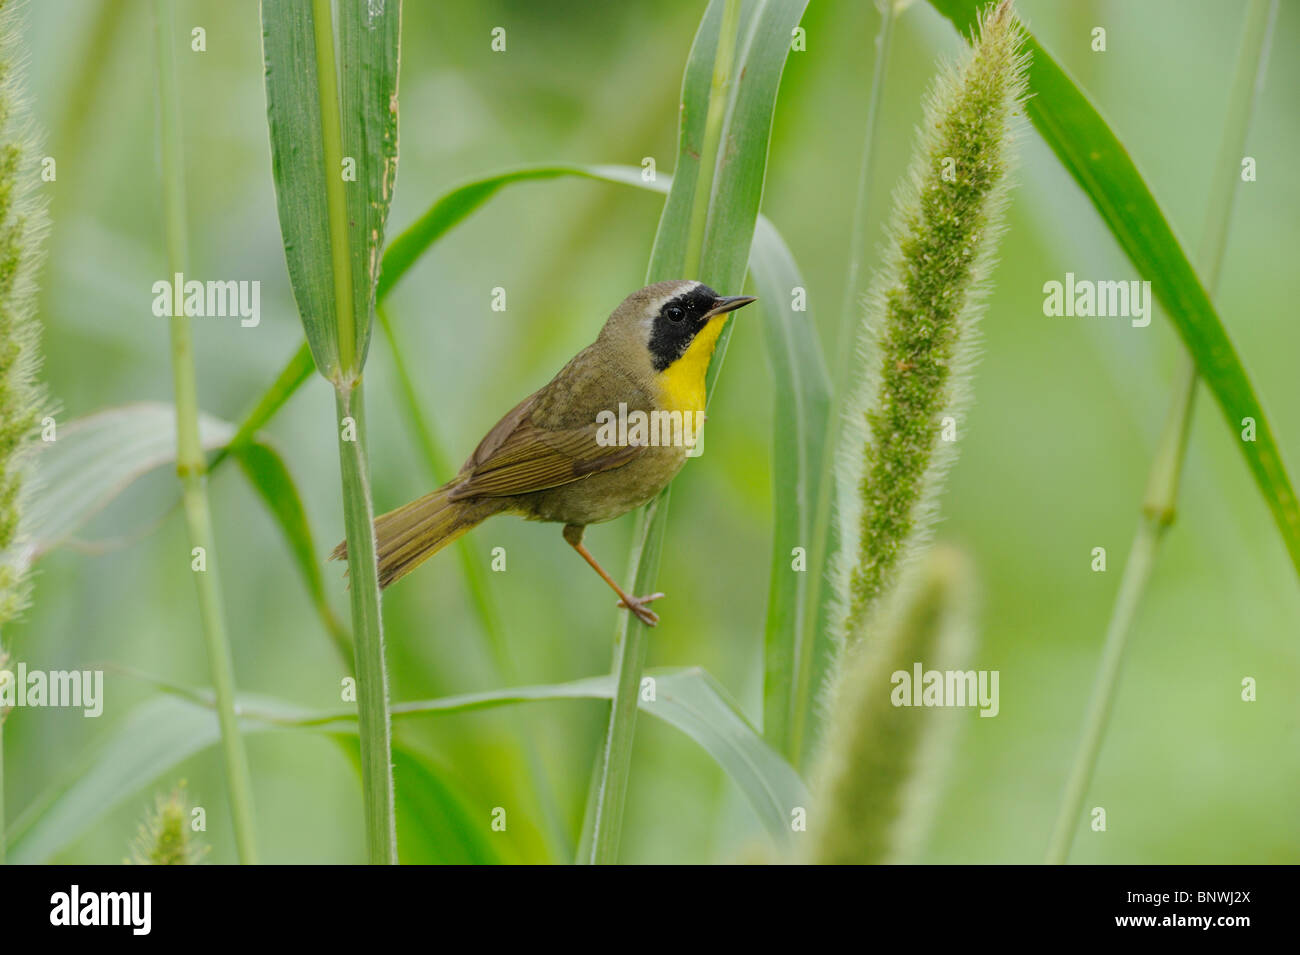 Common Yellowthroat (Geothlypis trichas) adult perched on Manchurian wild rice,  Mustang Island, Coastal Bend, Texas - Stock Image